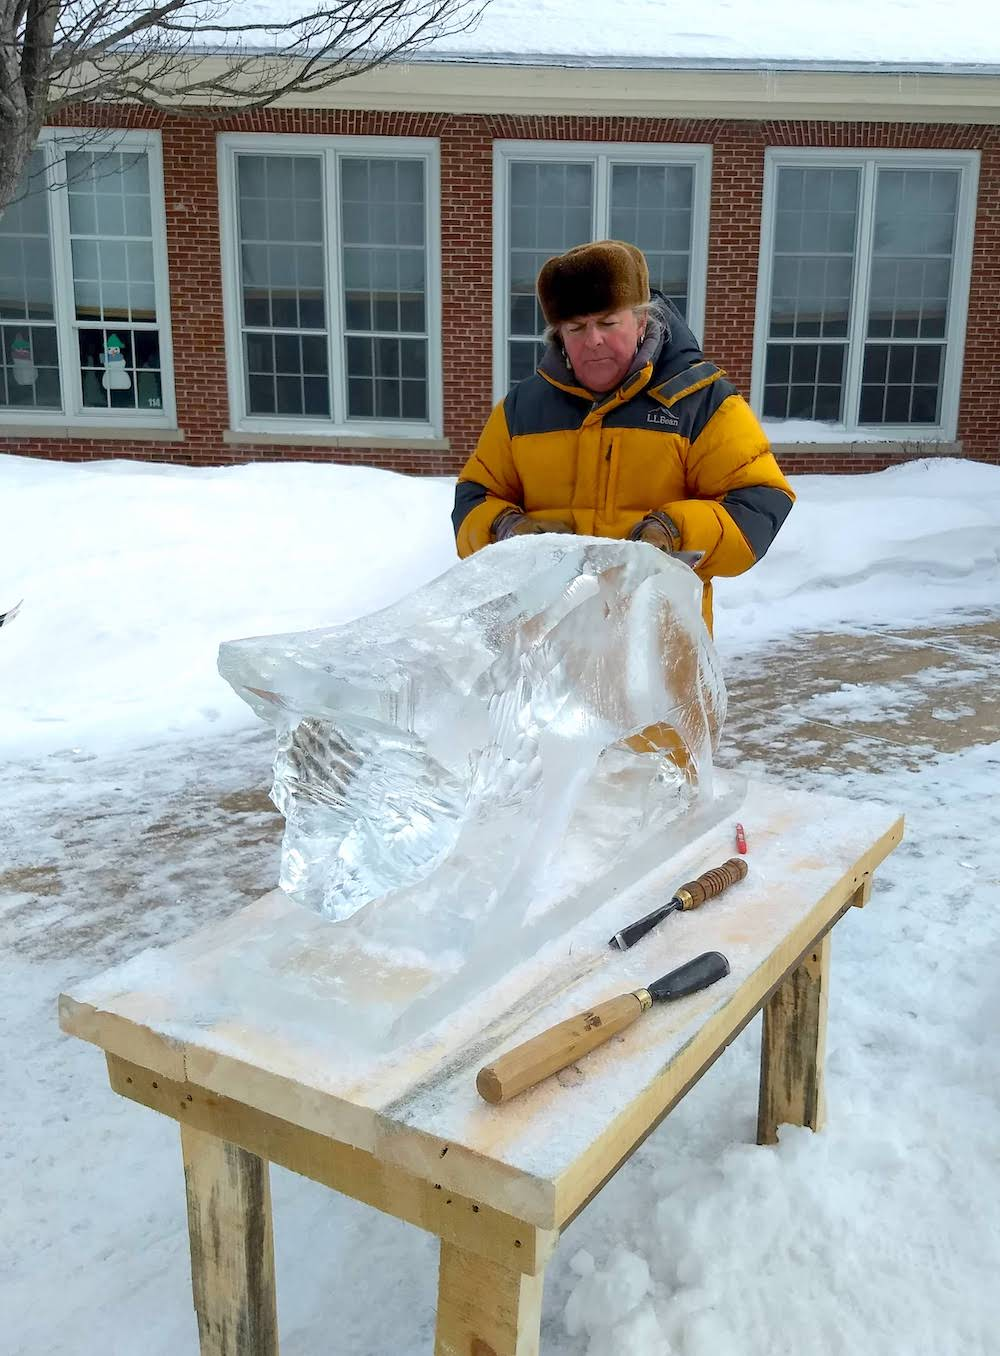 An early stage of the ice carving